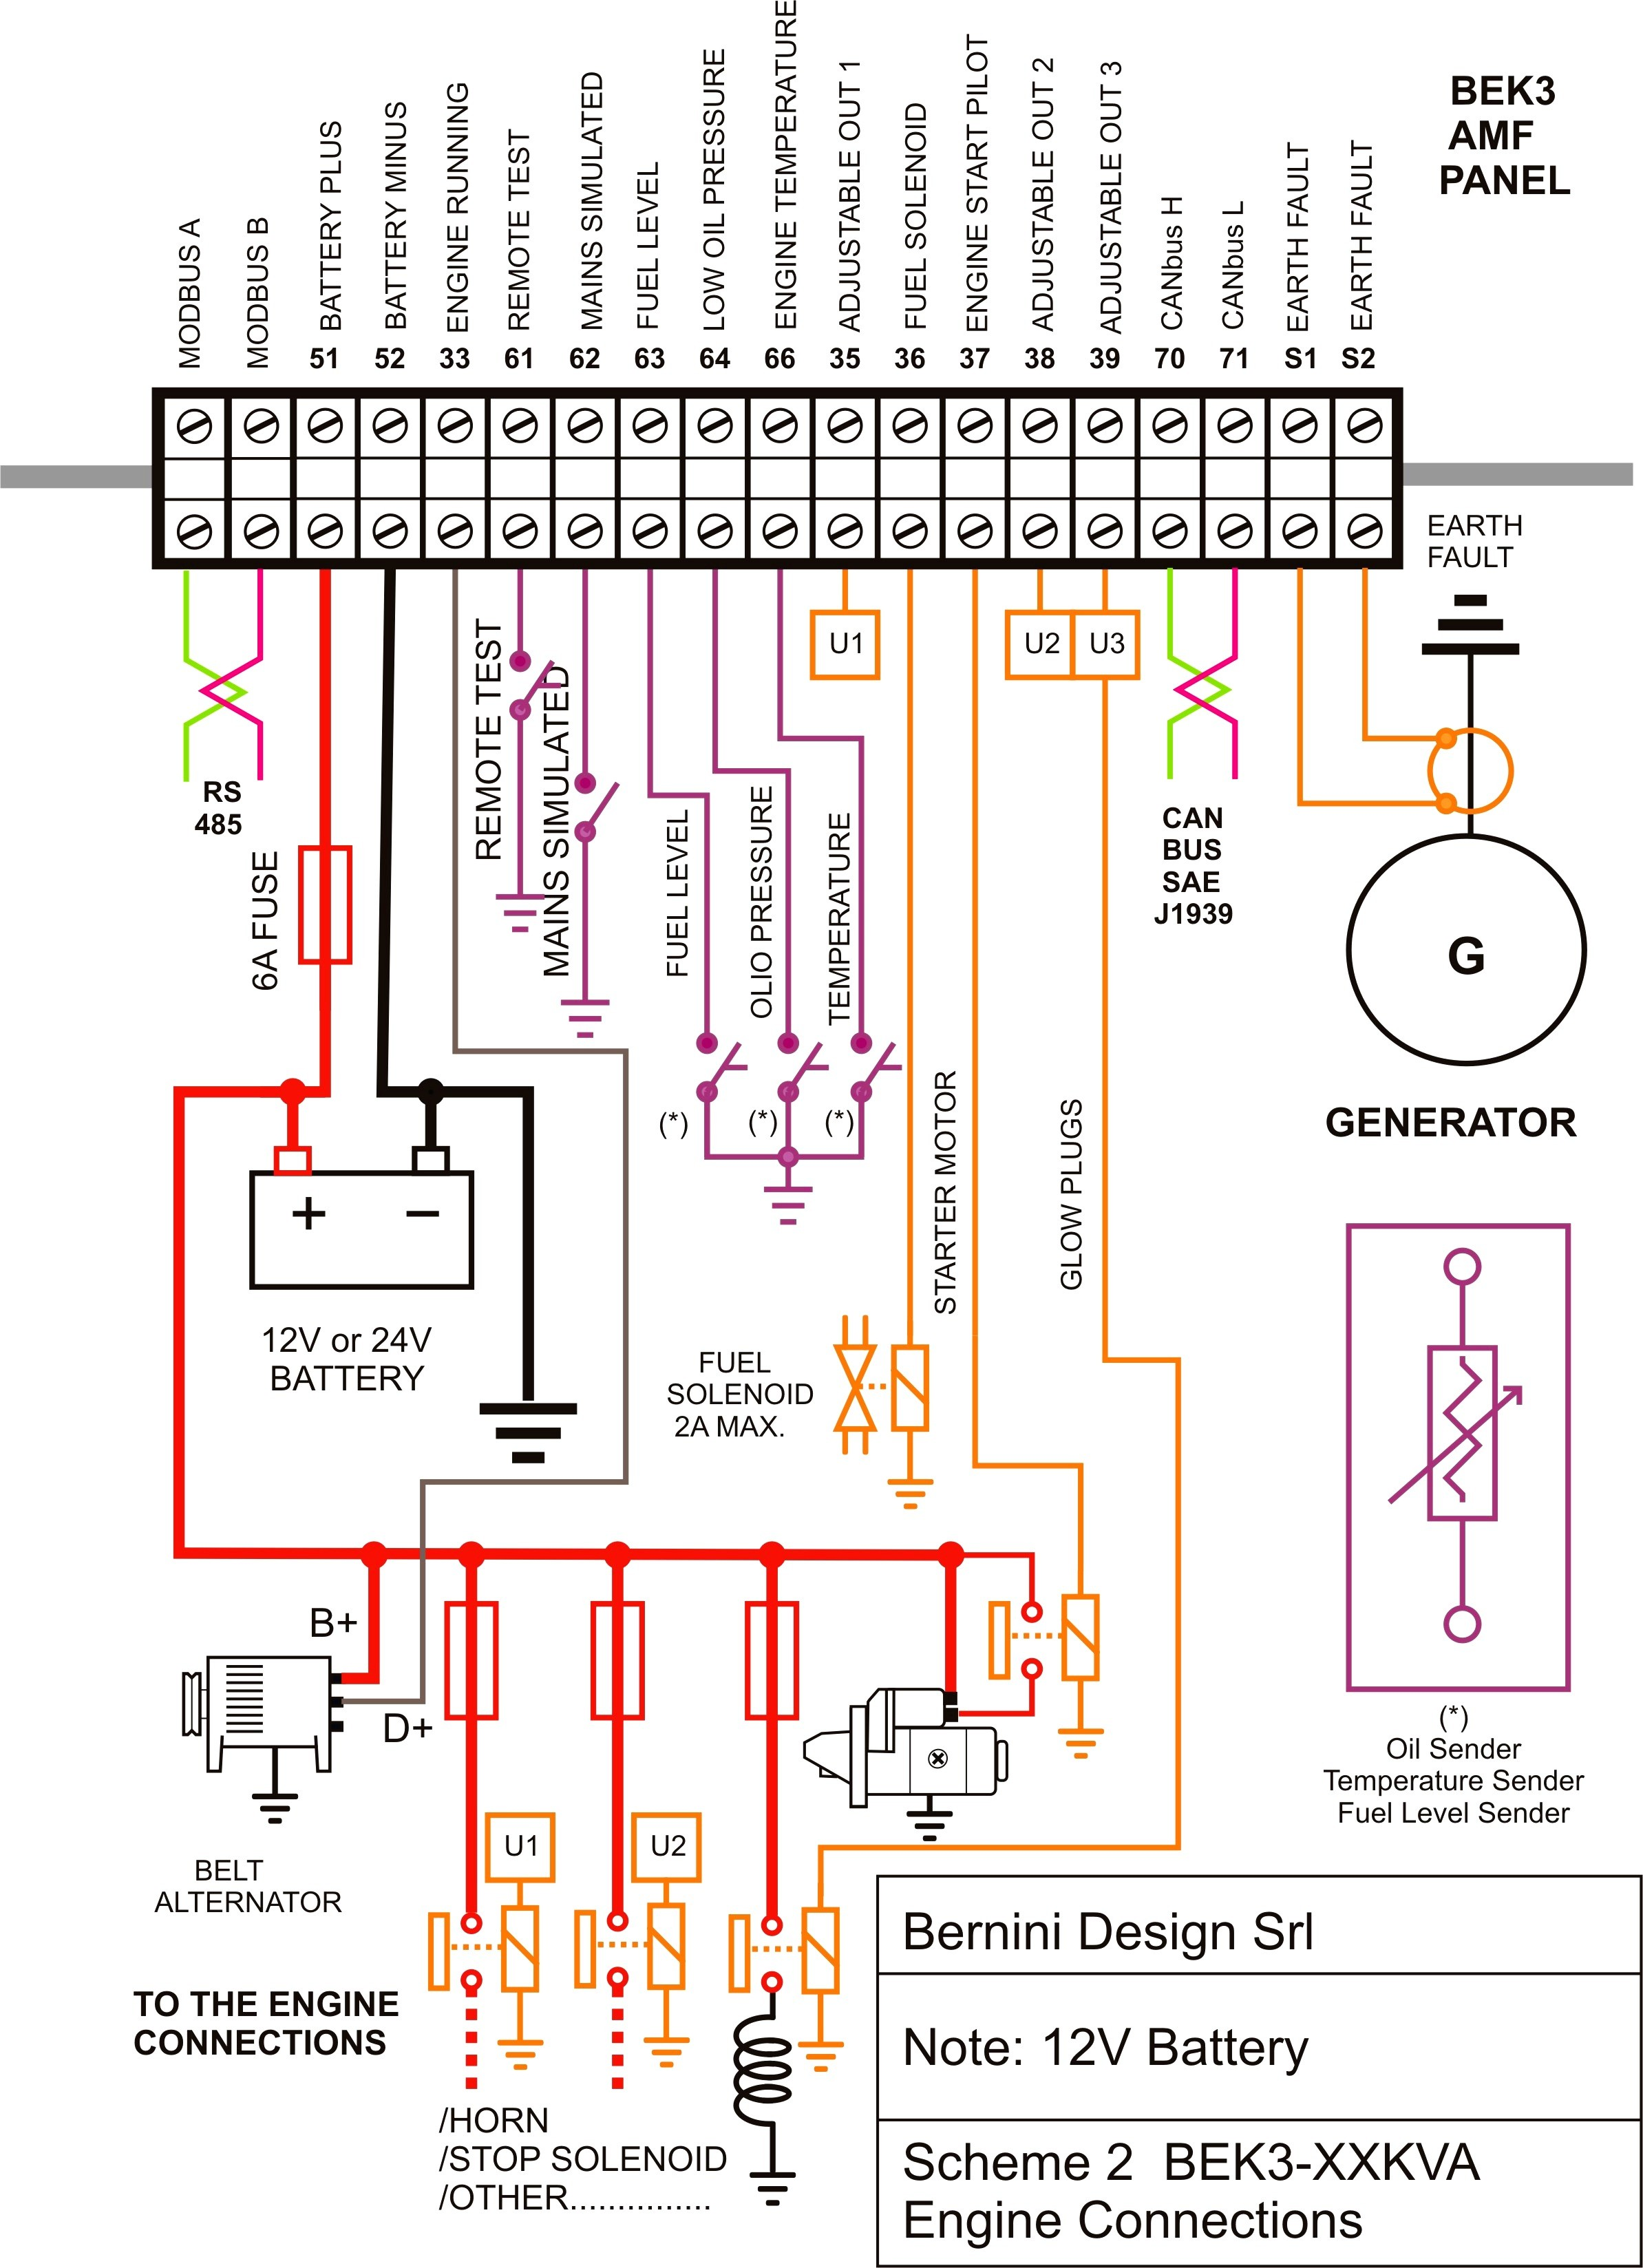 Schematic Diagram Of Diesel Engine Ponent Electrical Control Diagram Diesel Generator Panel Wiring Of Schematic Diagram Of Diesel Engine